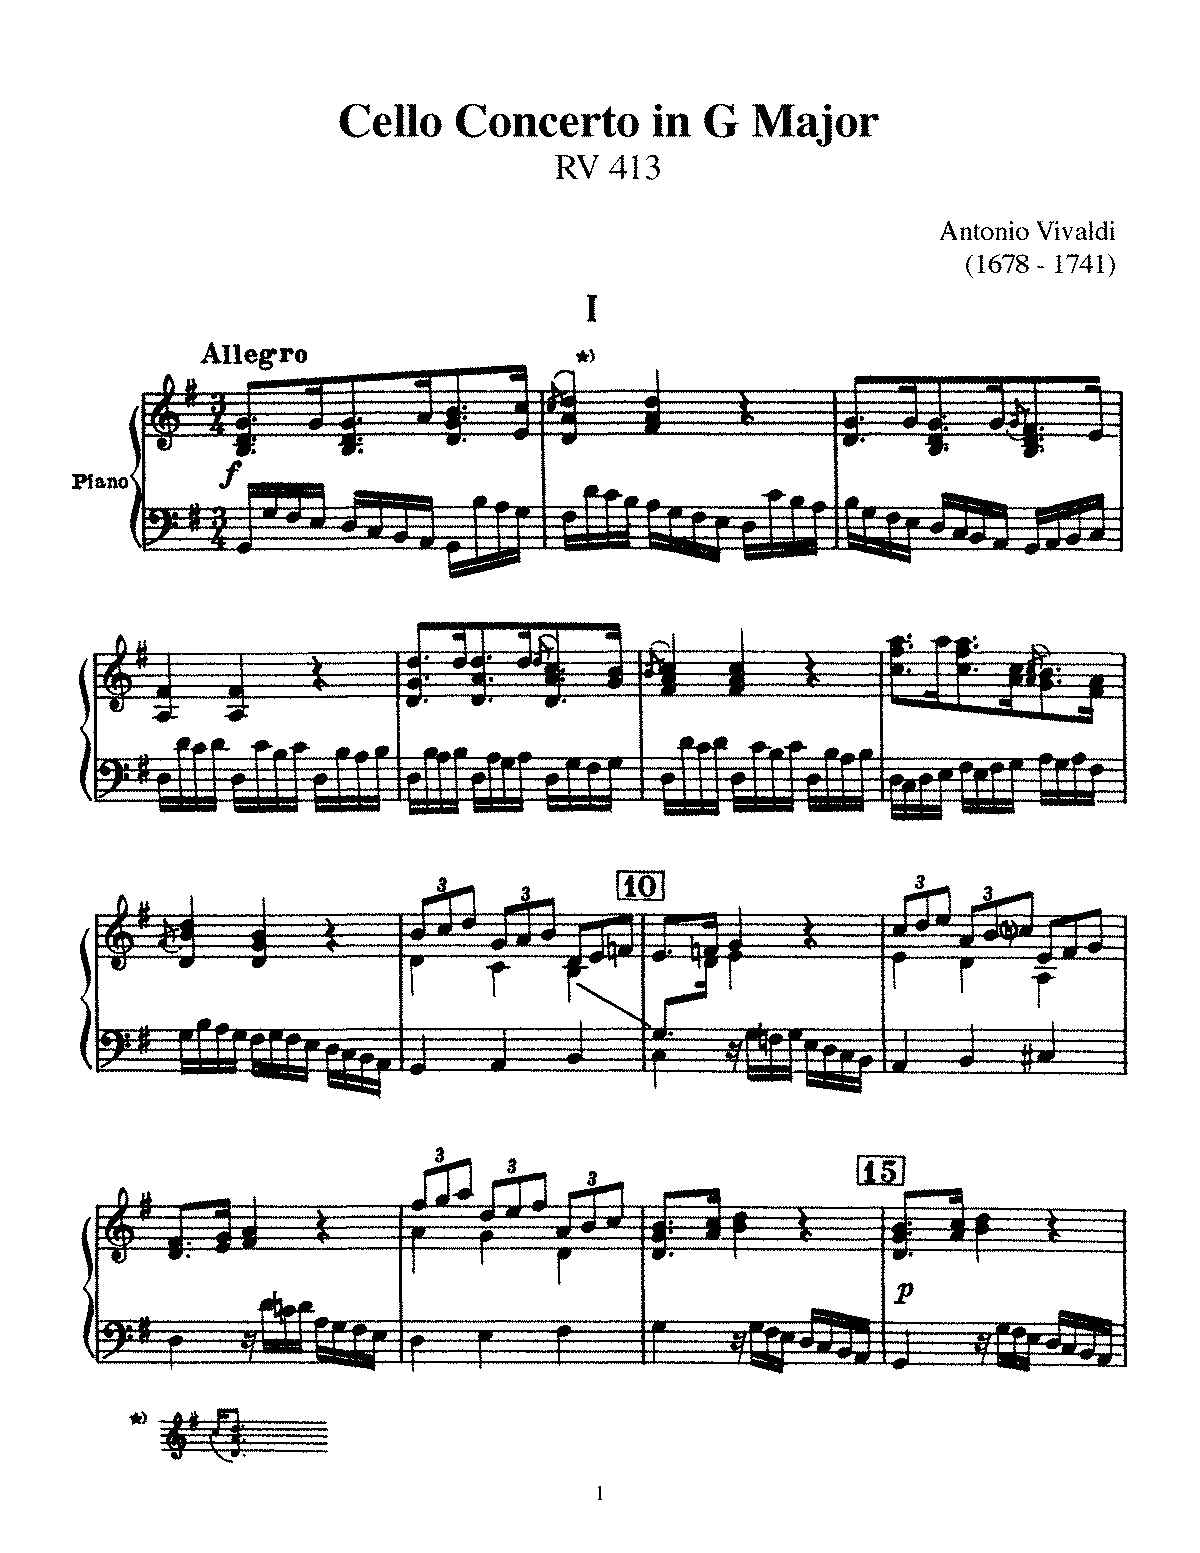 PMLP61891-Vivaldi - Cello Concerto in G Major RV 413 piano a.pdf